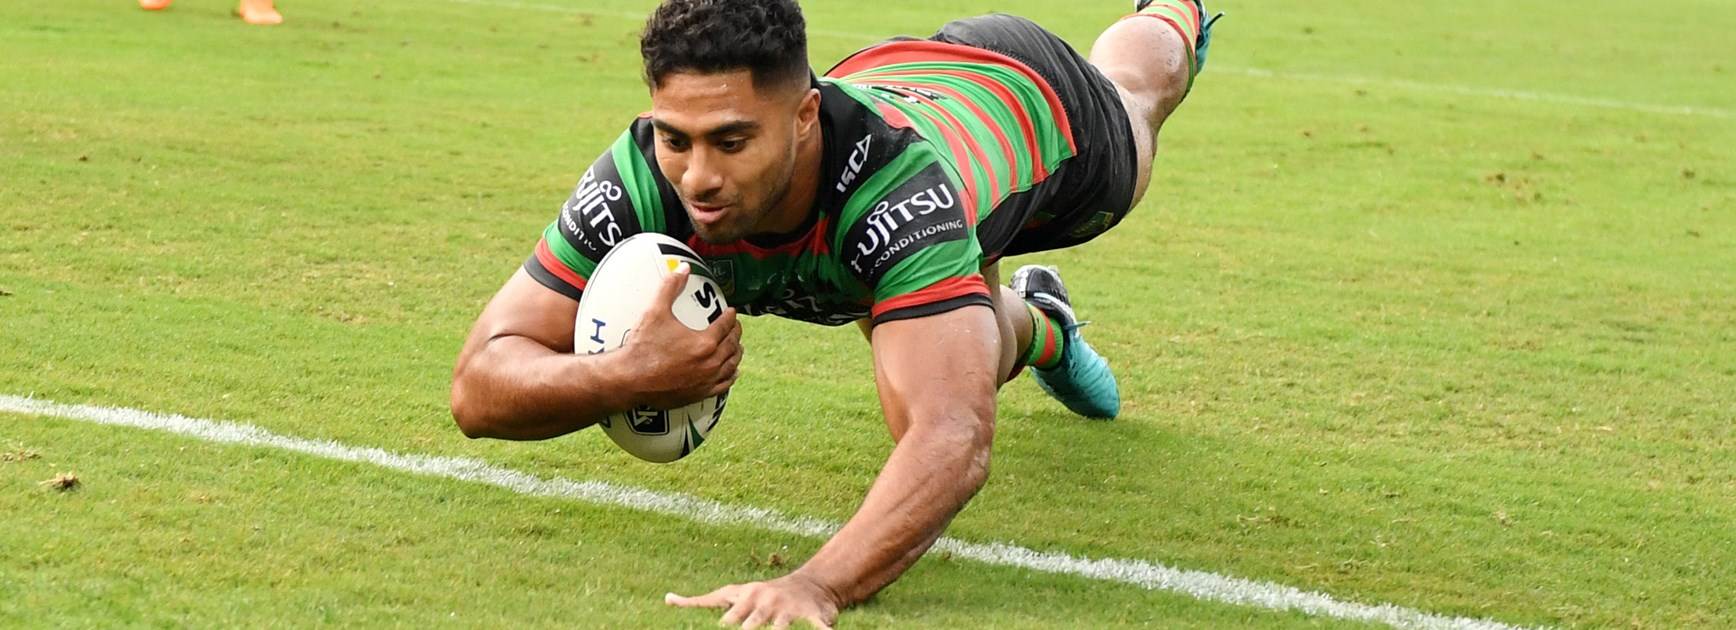 Rabbitohs winger Robert Jennings scores a try.